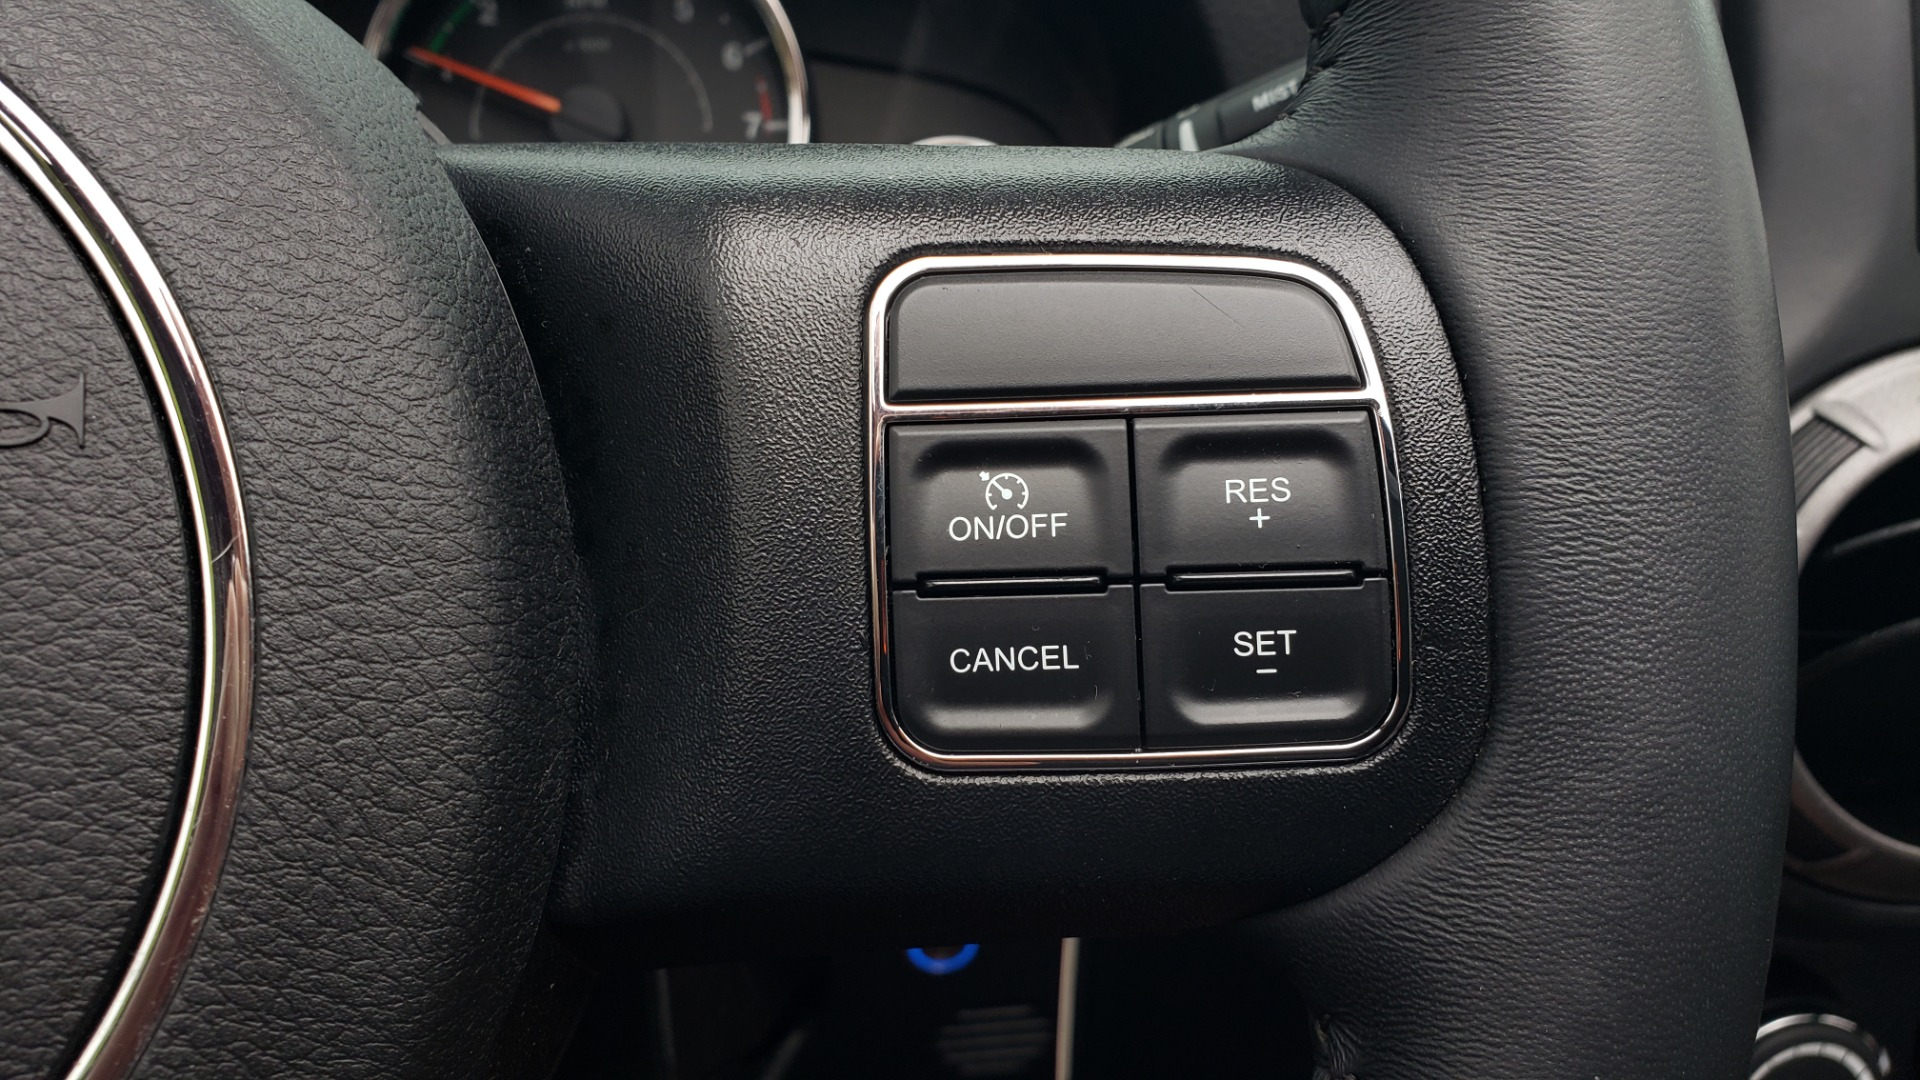 Used 2016 Jeep WRANGLER UNLIMITED SPORT 4X4 / POWER TOP / NAV / HTD STS / REARVIEW for sale $36,999 at Formula Imports in Charlotte NC 28227 57